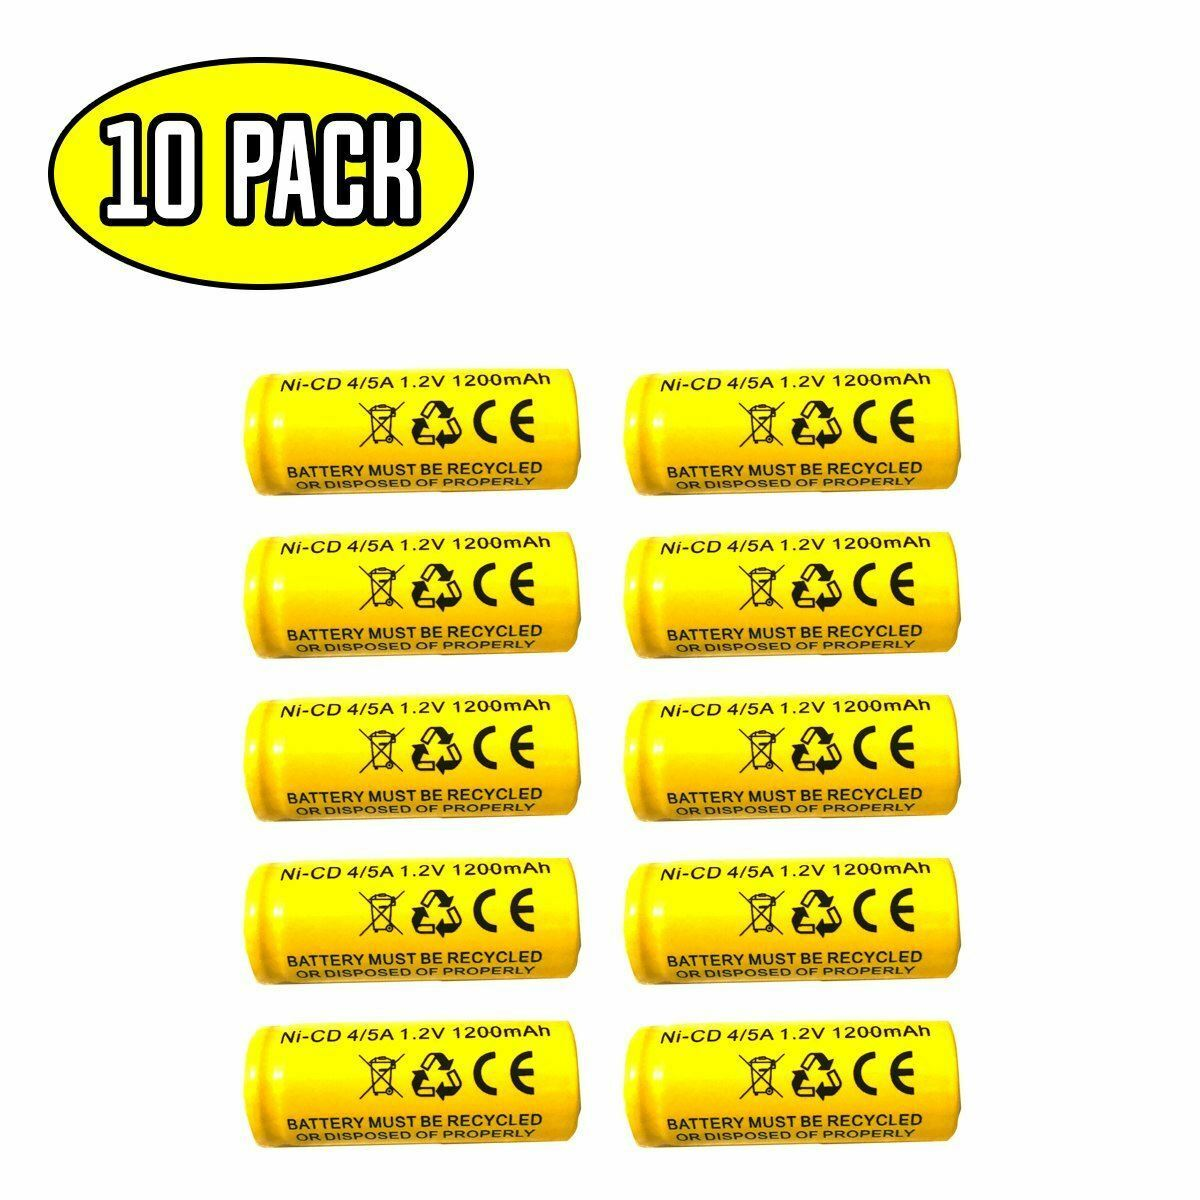 (10 pack) 1.2v 1200mAh Ni-CD Battery Replacement for Emergency / Exit Light